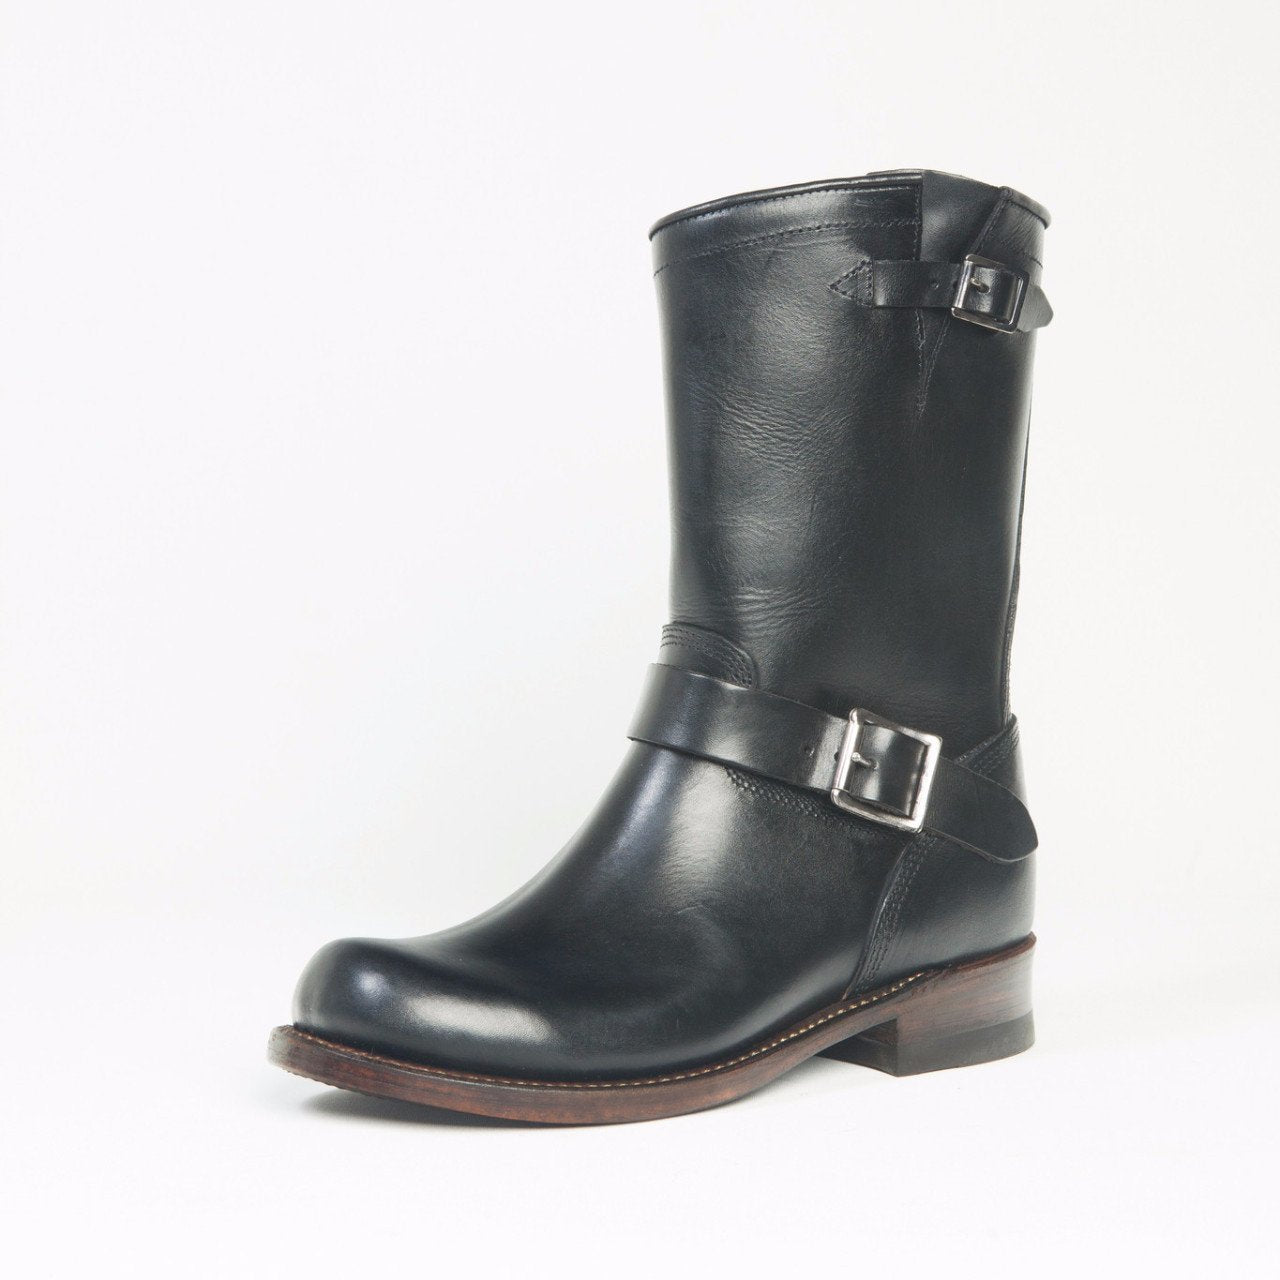 Engineer Boot 1920's Edition - Black